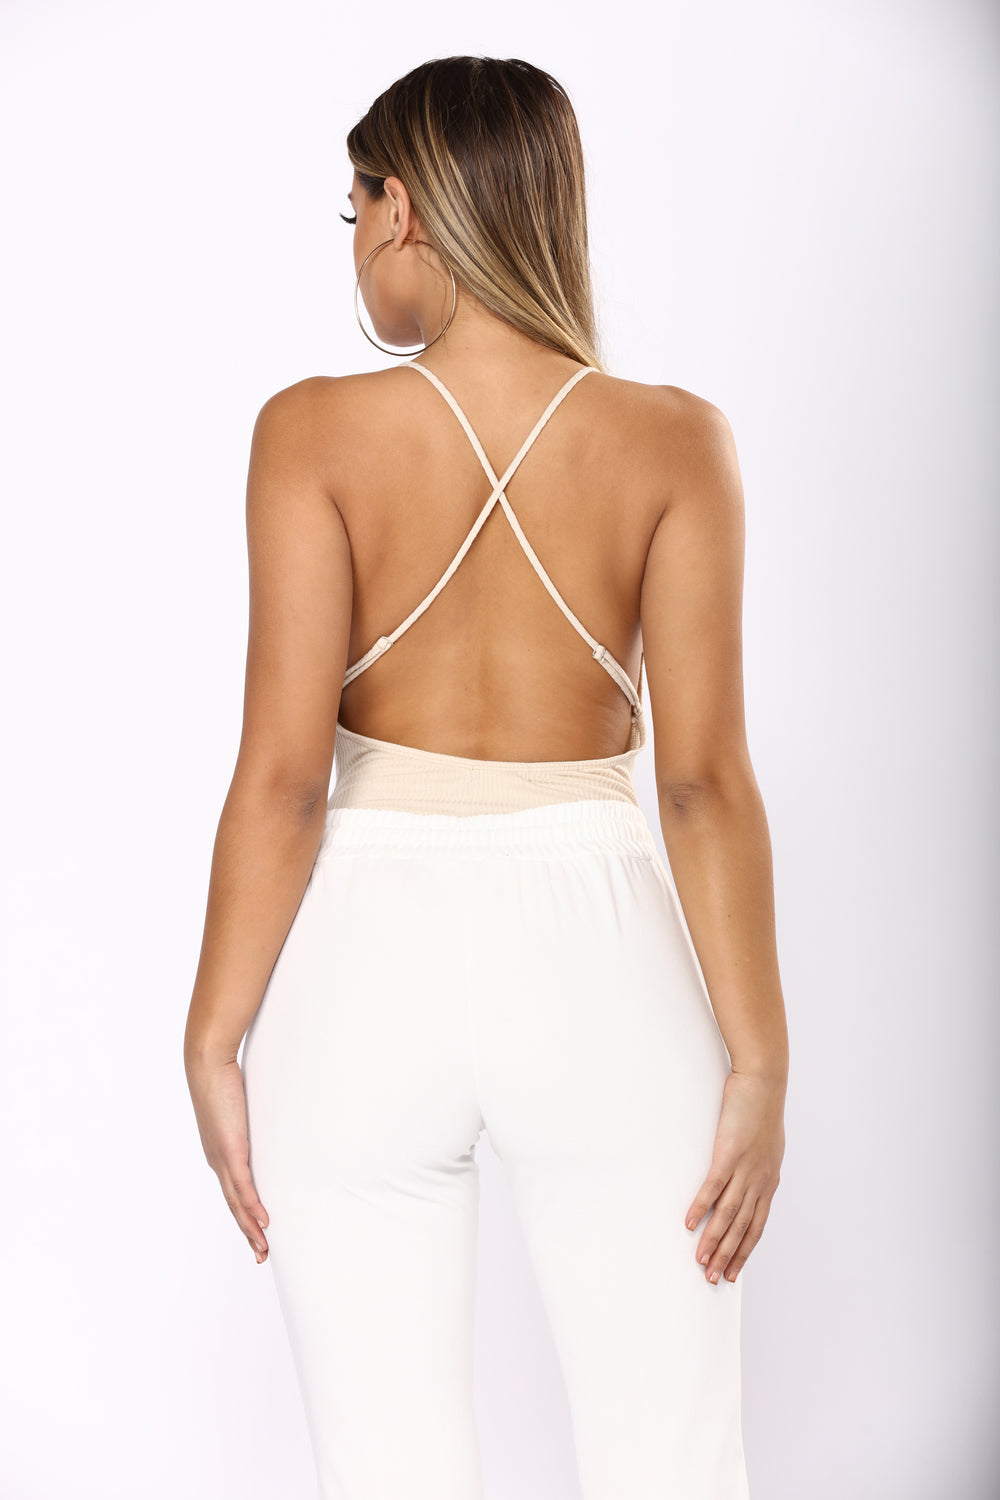 Just A Peck V-Neck Bodysuit - Taupe